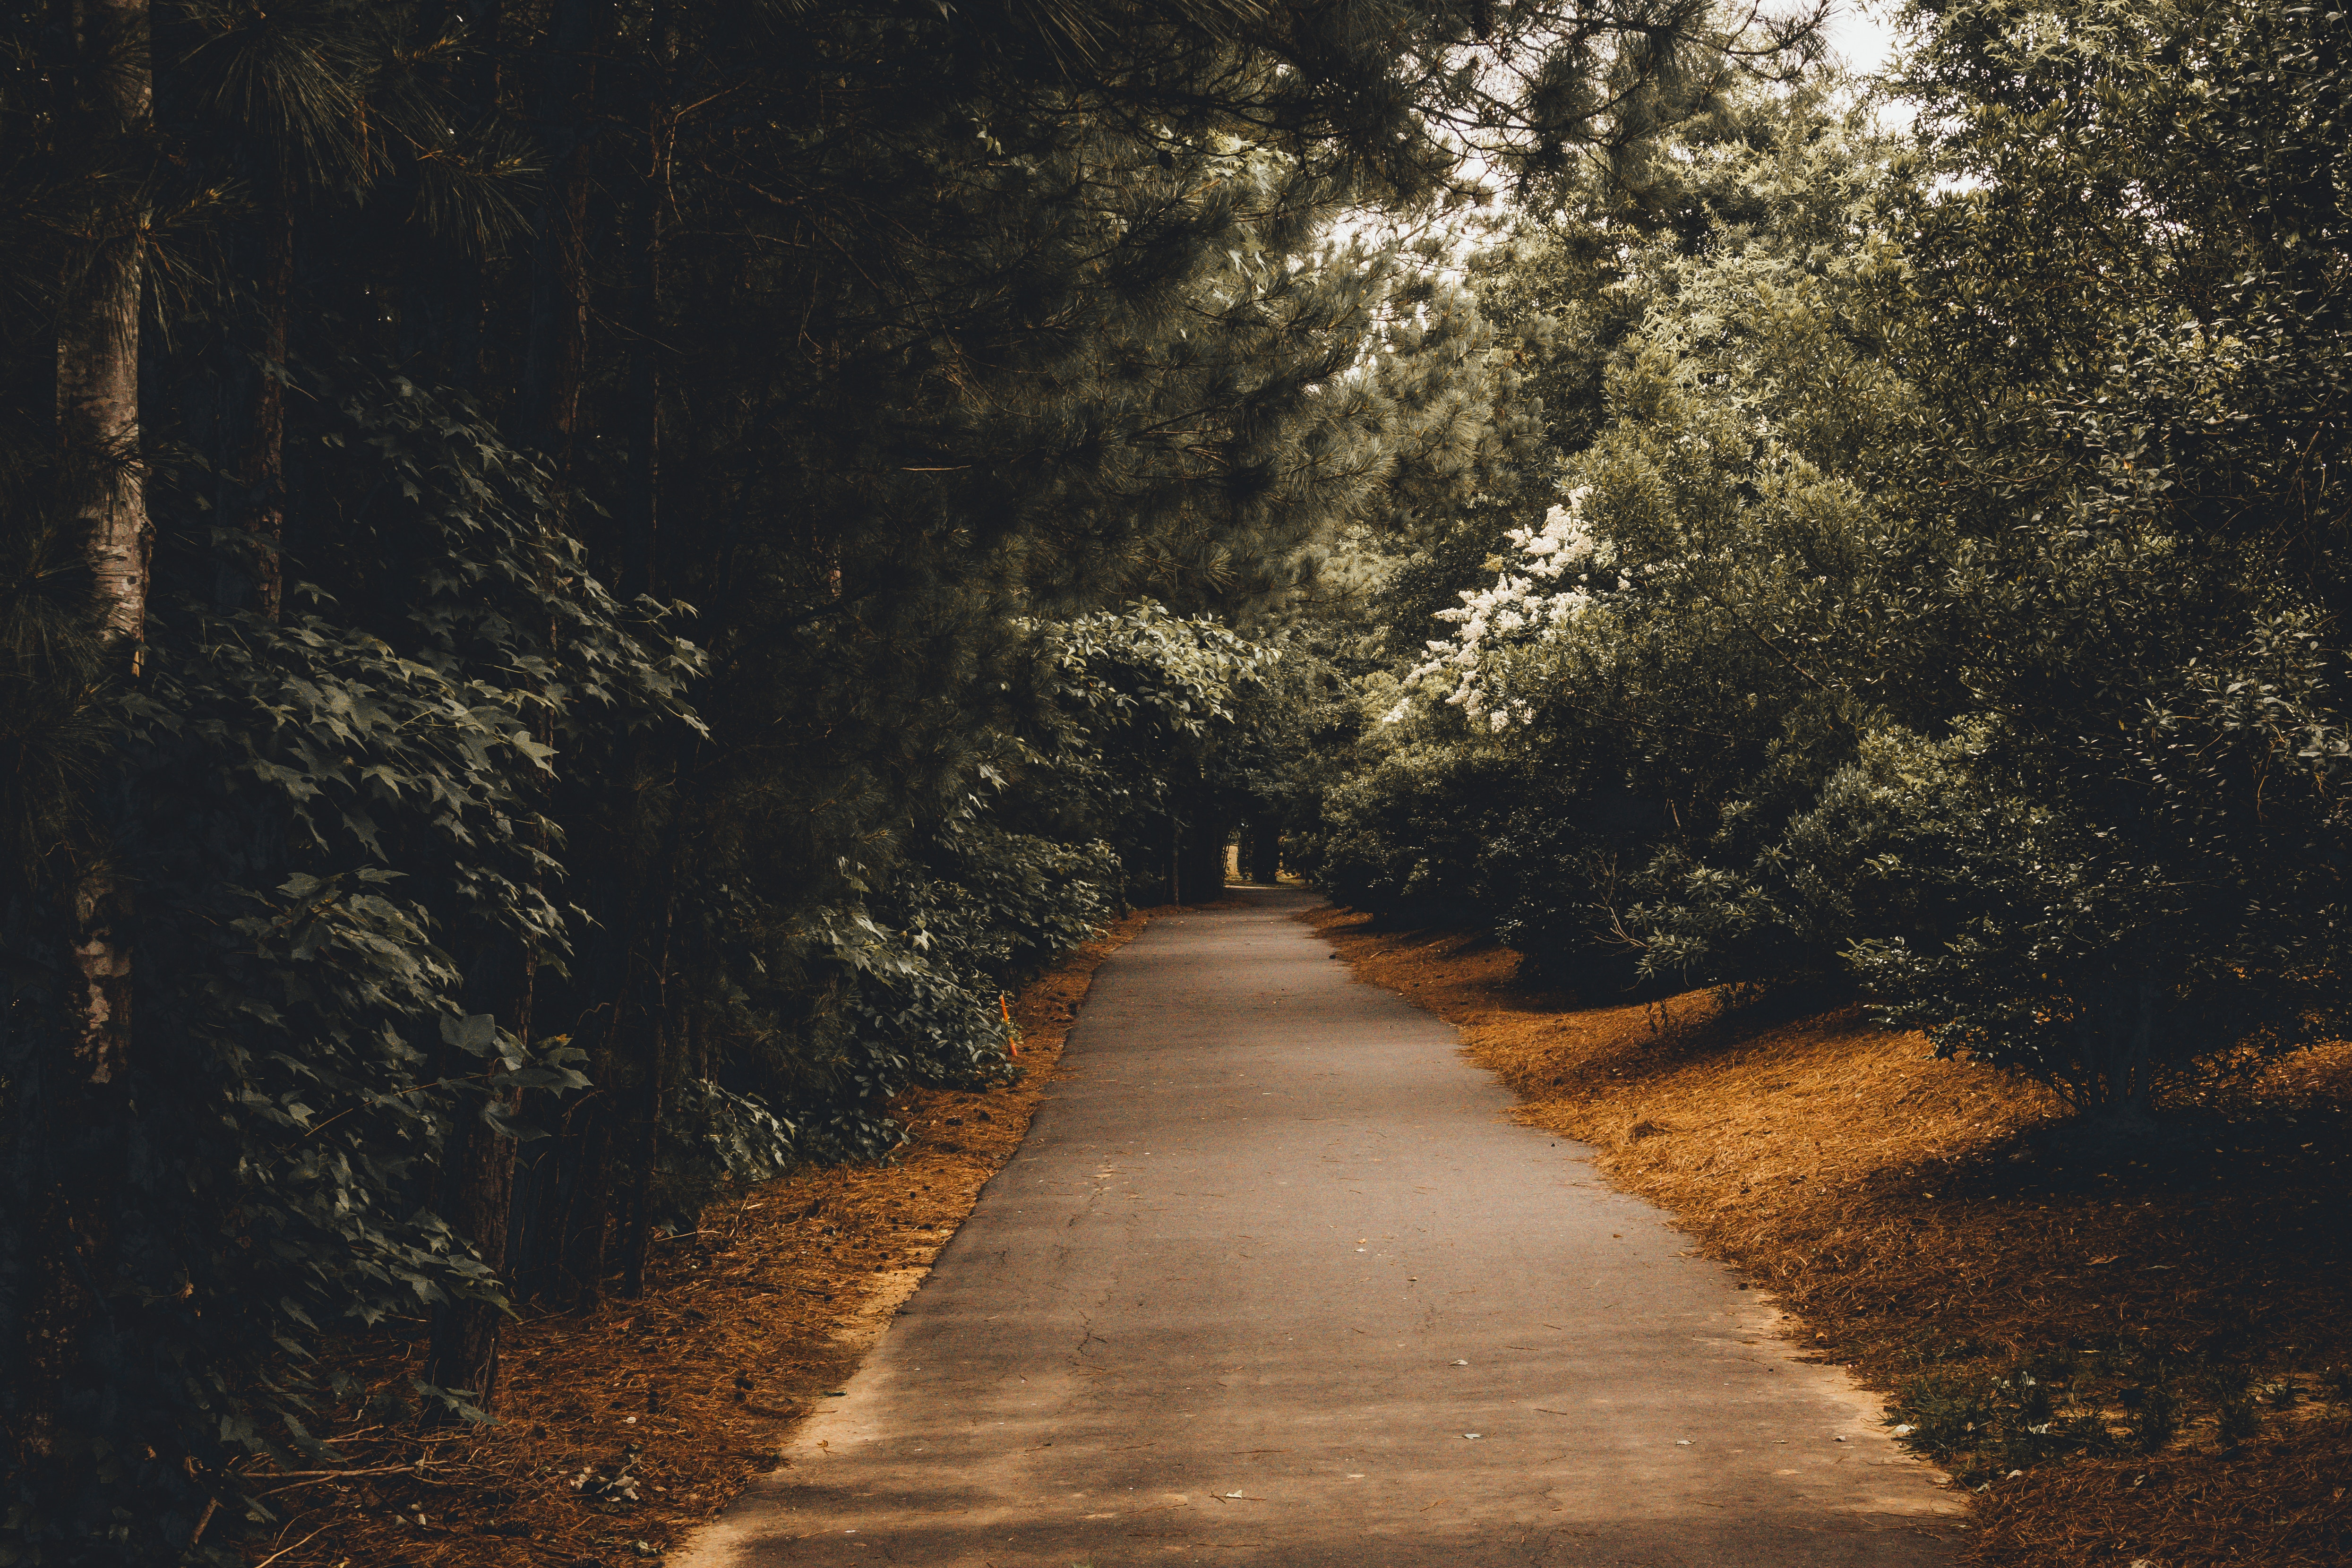 A path passing through some trees, photo by Gui Avelar via Unsplash